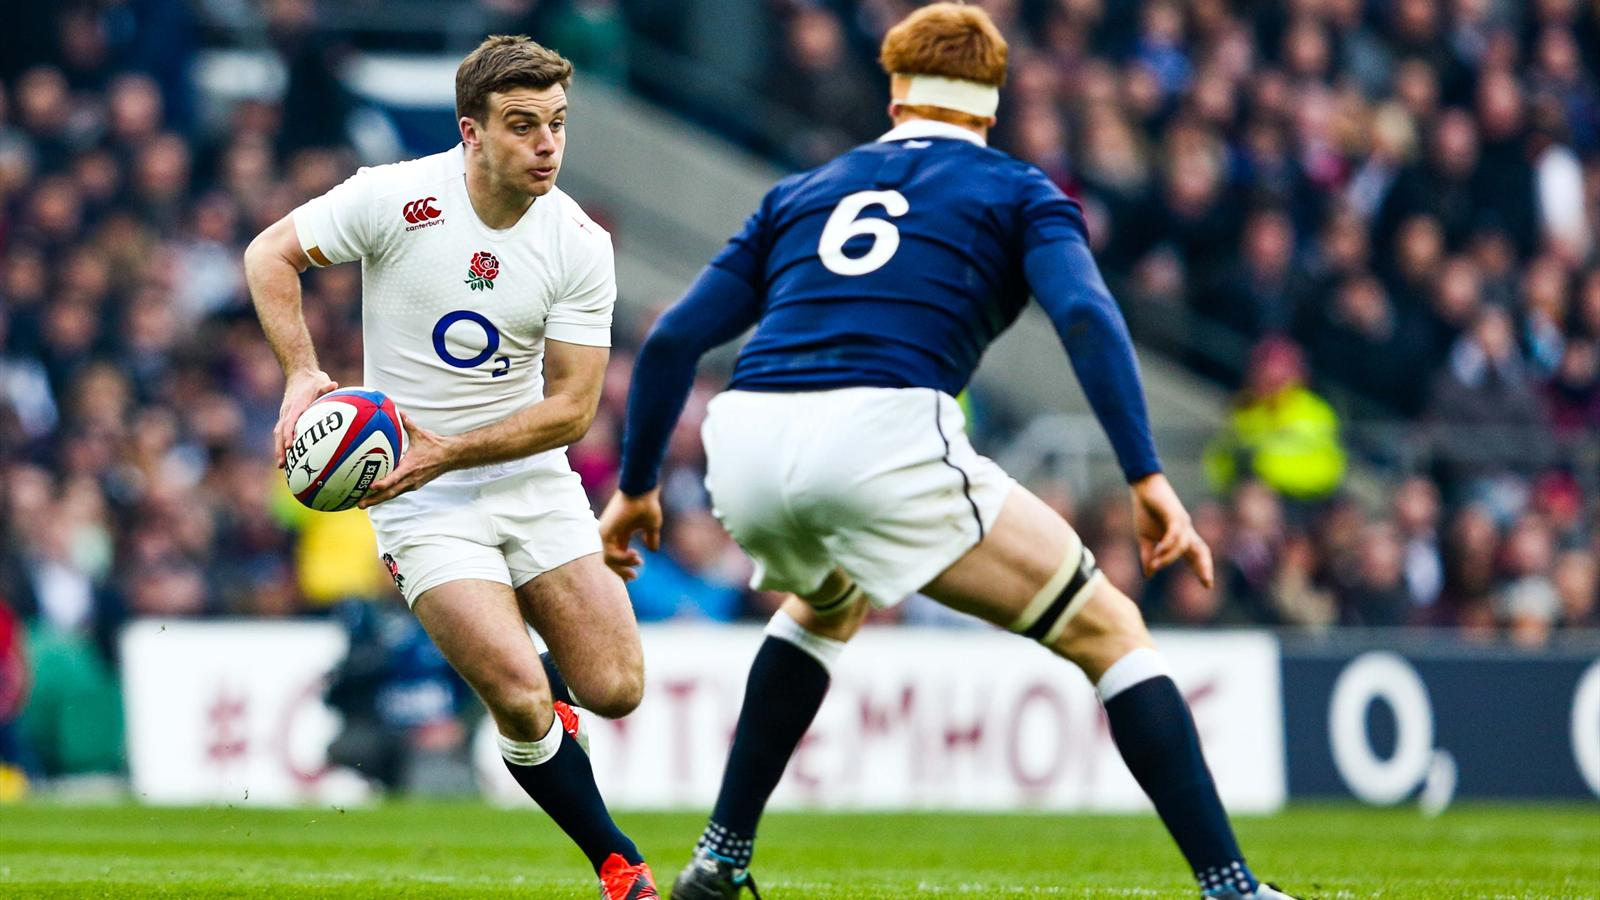 George Ford (Angleterre) face à l'Ecosse - 14 mars 2015